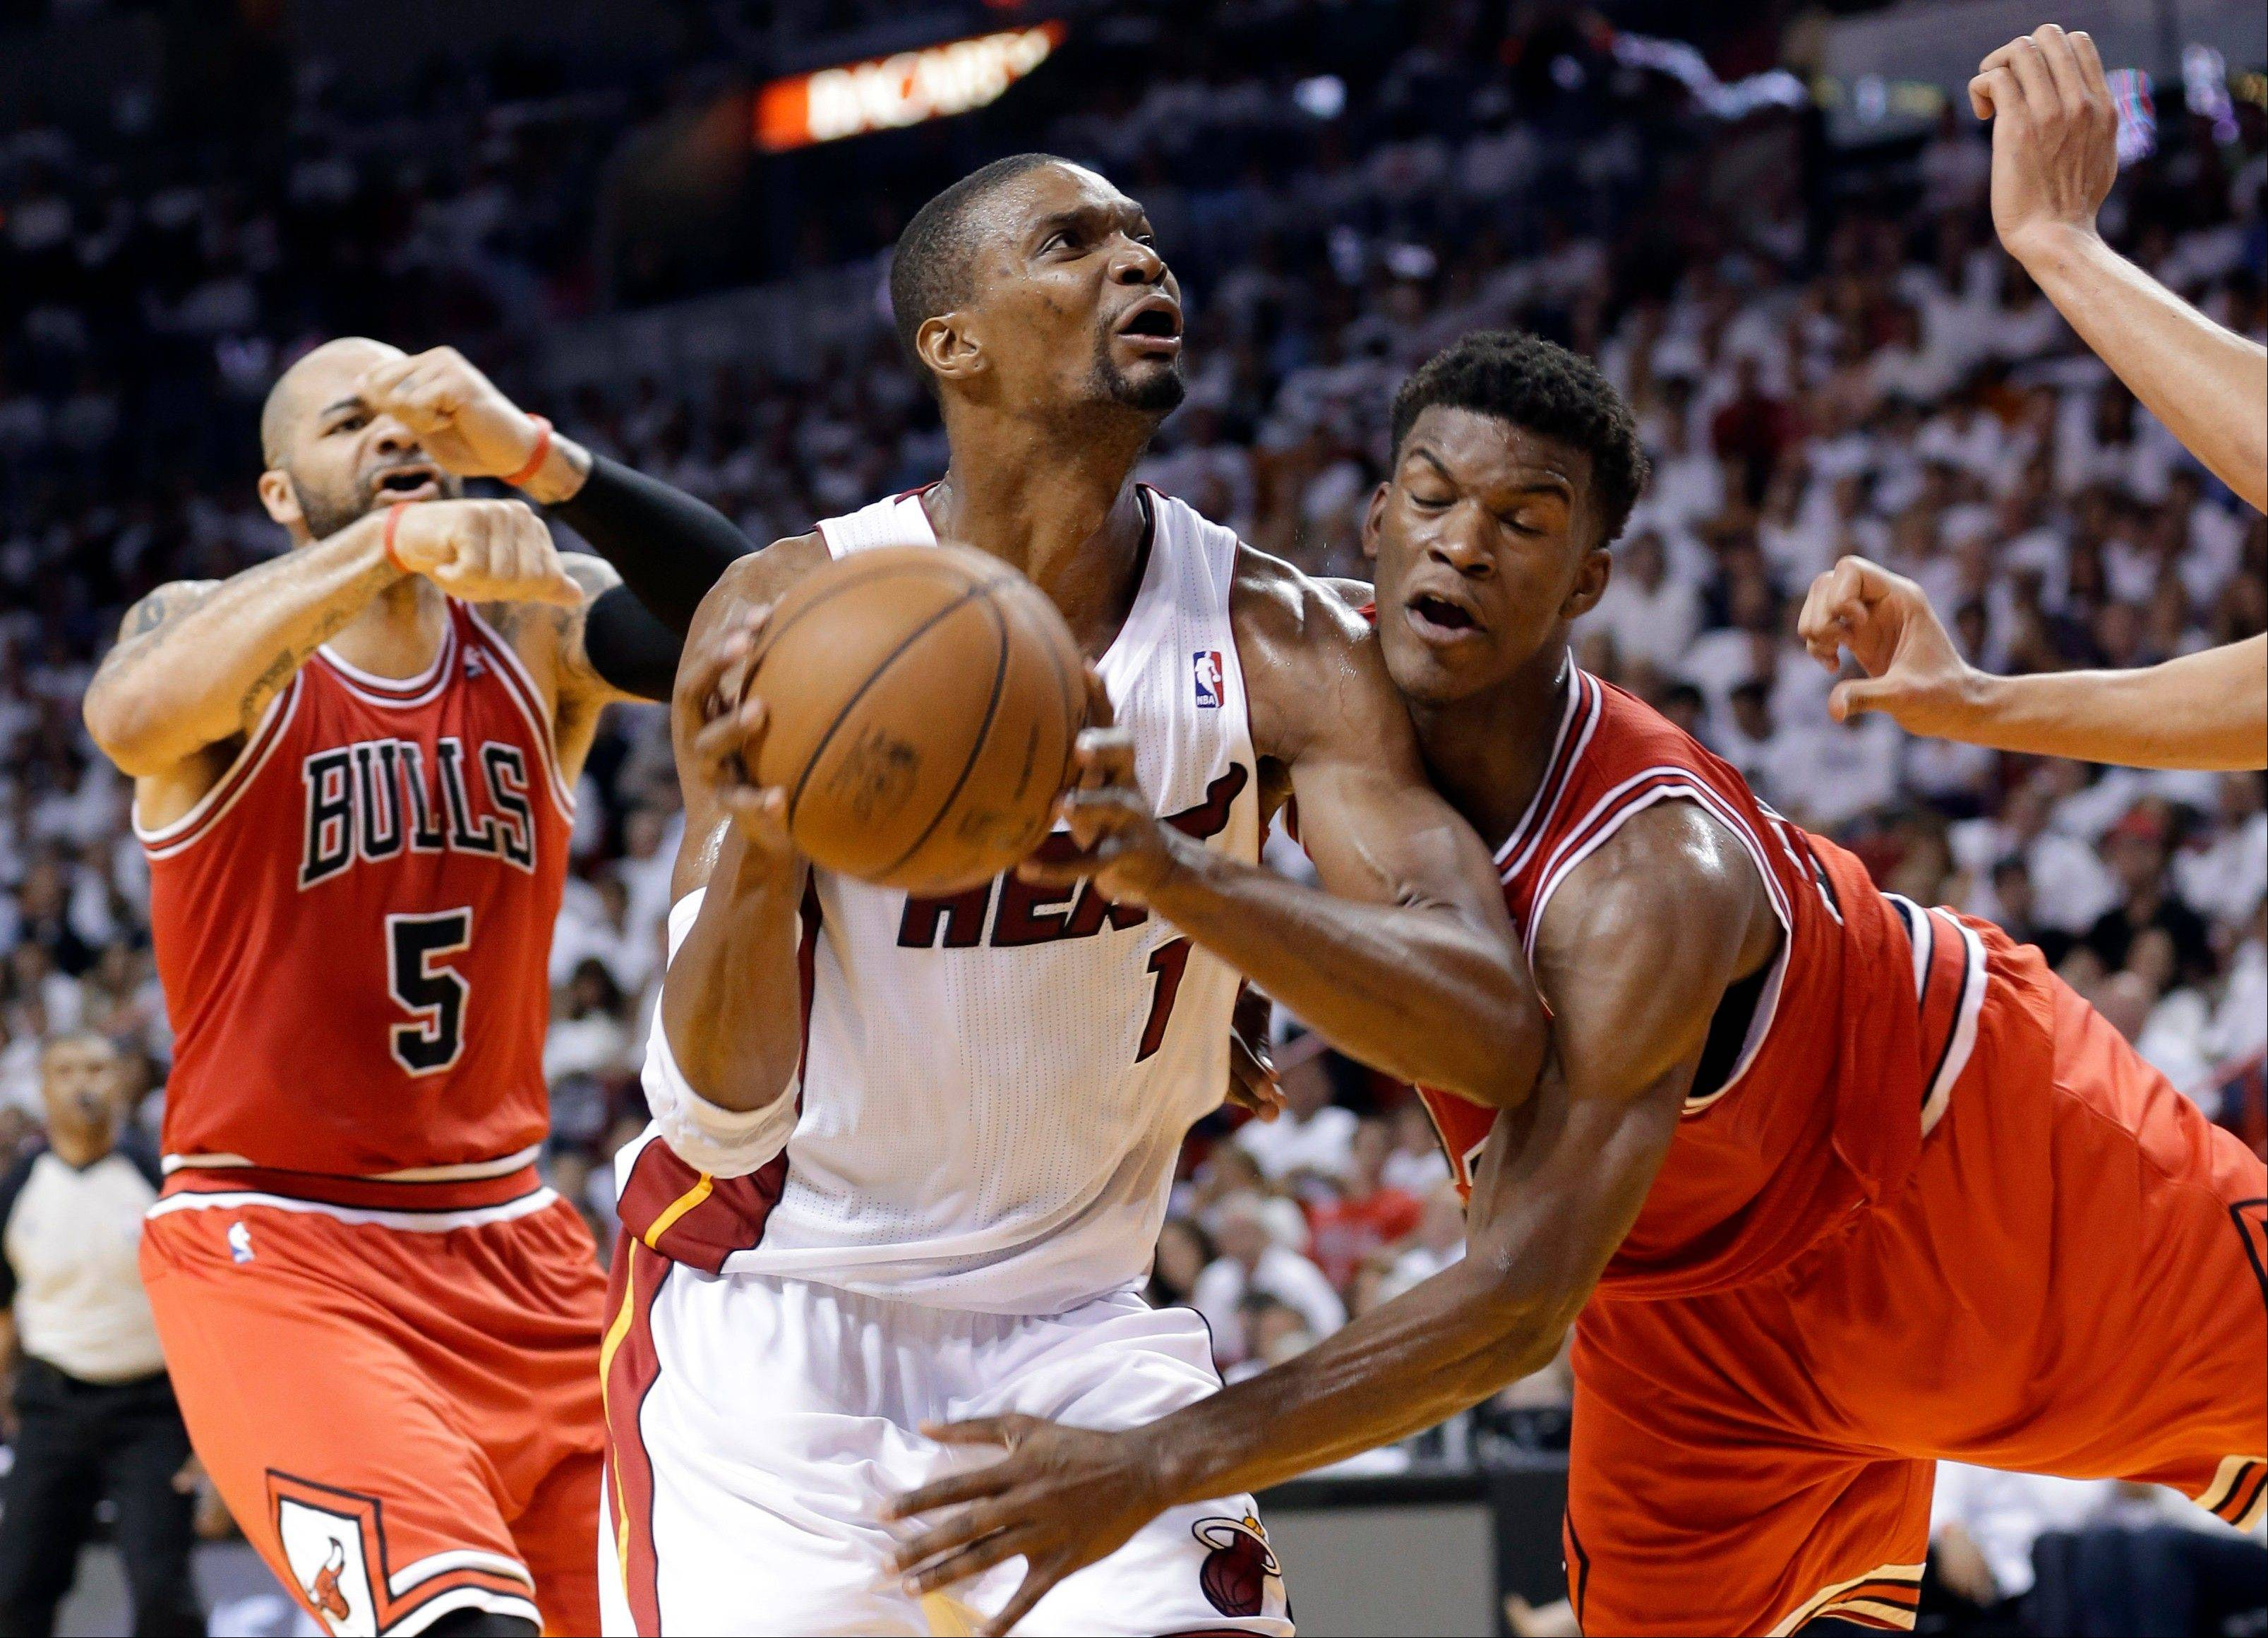 Miami Heat's Chris Bosh (1) drives to the basket as Chicago Bulls' Jimmy Butler, right, defends during the first half of Game 5 of an NBA basketball Eastern Conference semifinal, Wednesday, May 15, 2013 in Miami. At left is Bulls' Carlos Boozer.